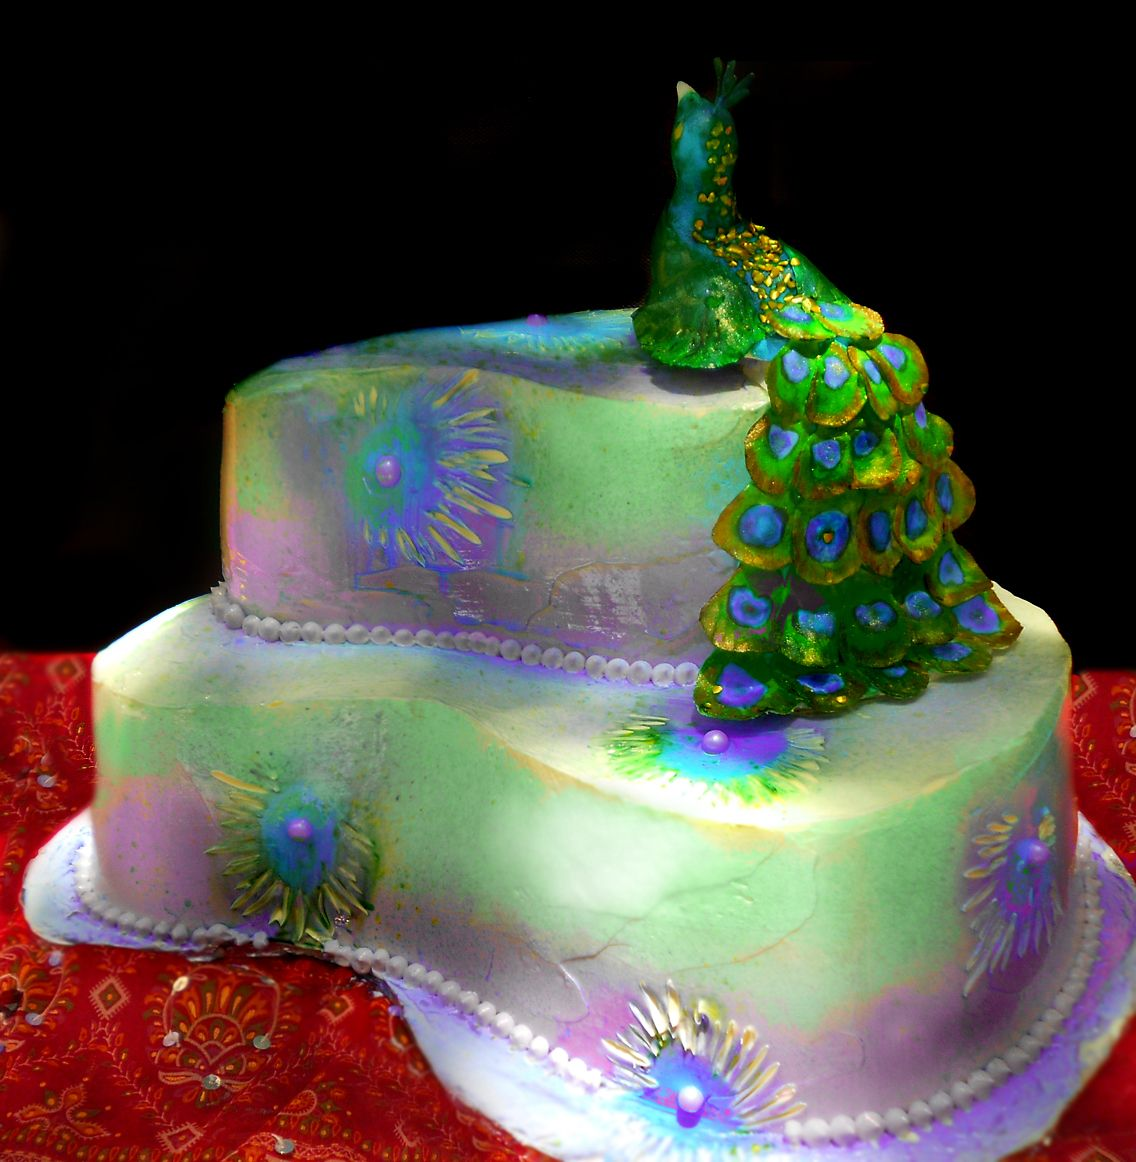 PEACOCK Birthday Cakes Adult Birthday Kid Birthday Got To Have - Peacock birthday cake